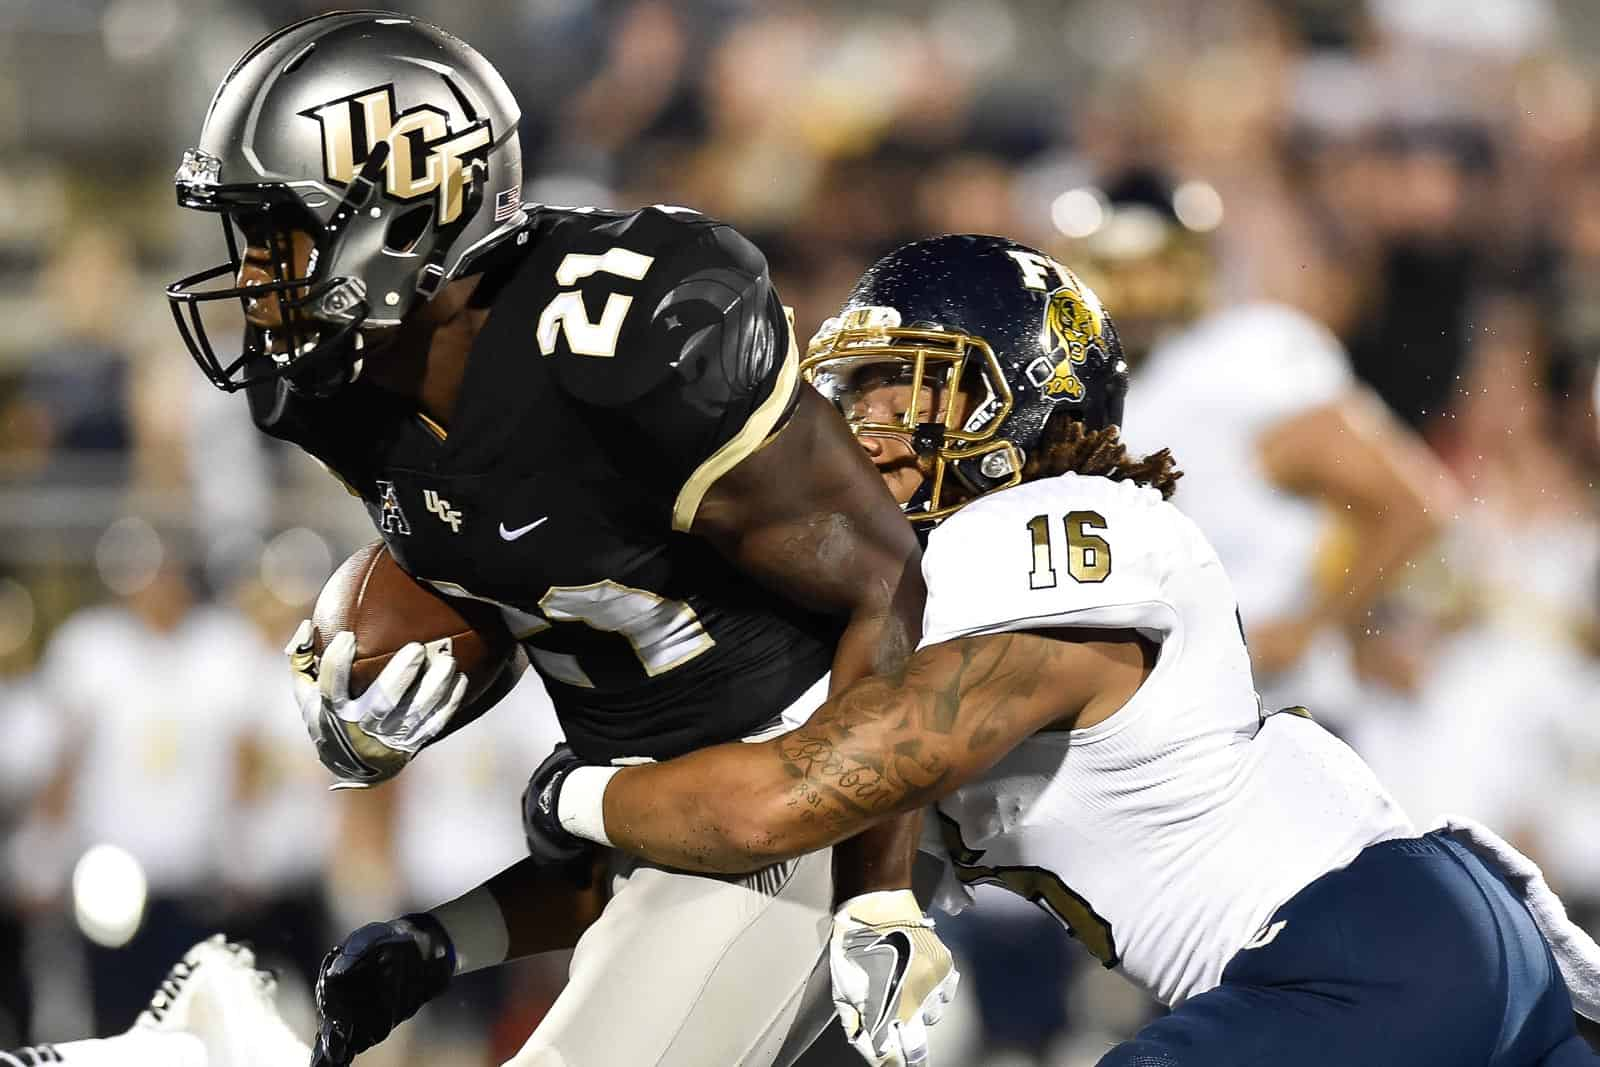 Ucf Football Schedule 2020.Ucf And Fiu Schedule Home And Home Football Series For 2020